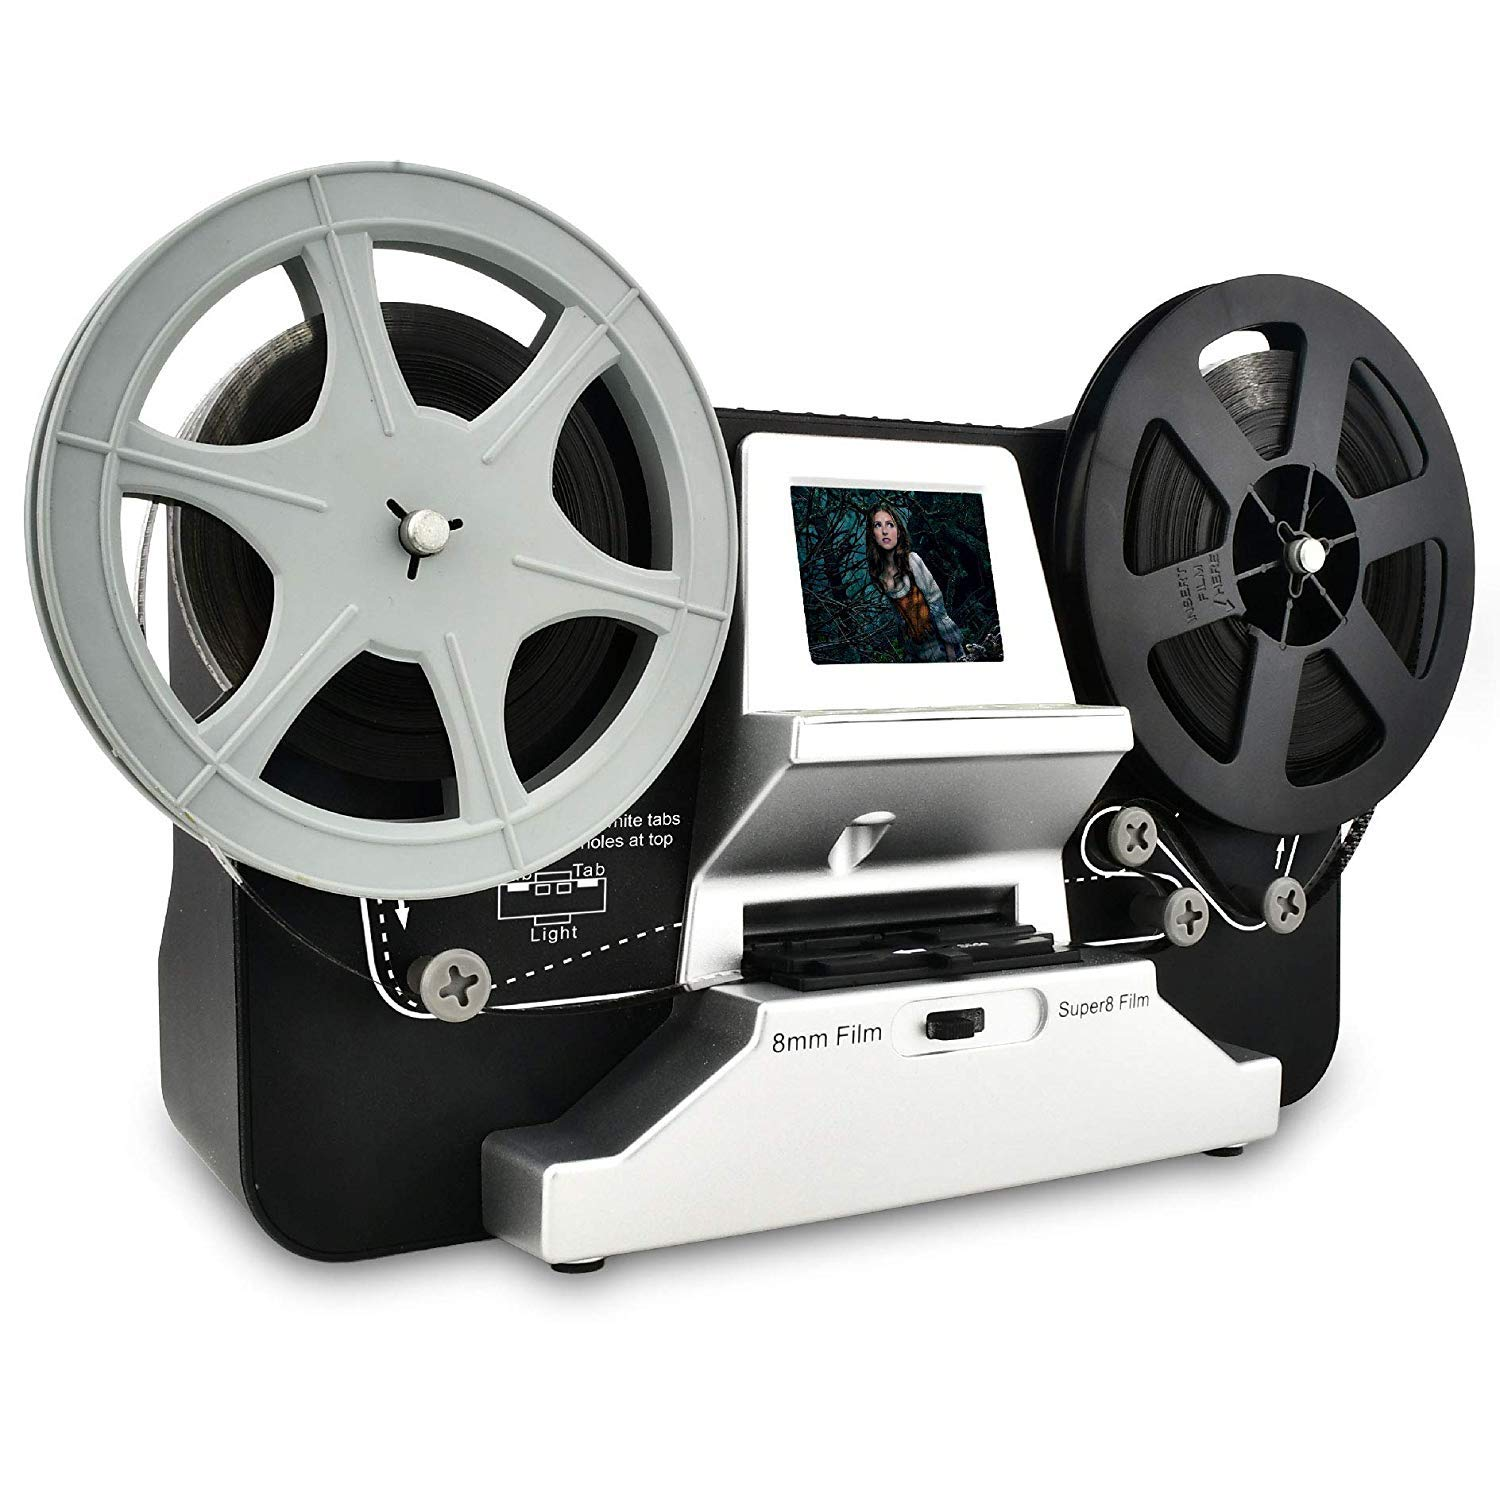 8mm & Super 8 Reels to Digital MovieMaker Film Sanner,Pro Film Digitizer Machine with 2.4'' LCD, Black (Film 2 Digital Movie Maker&8mm Film Scanner) with 32 GB SD Card